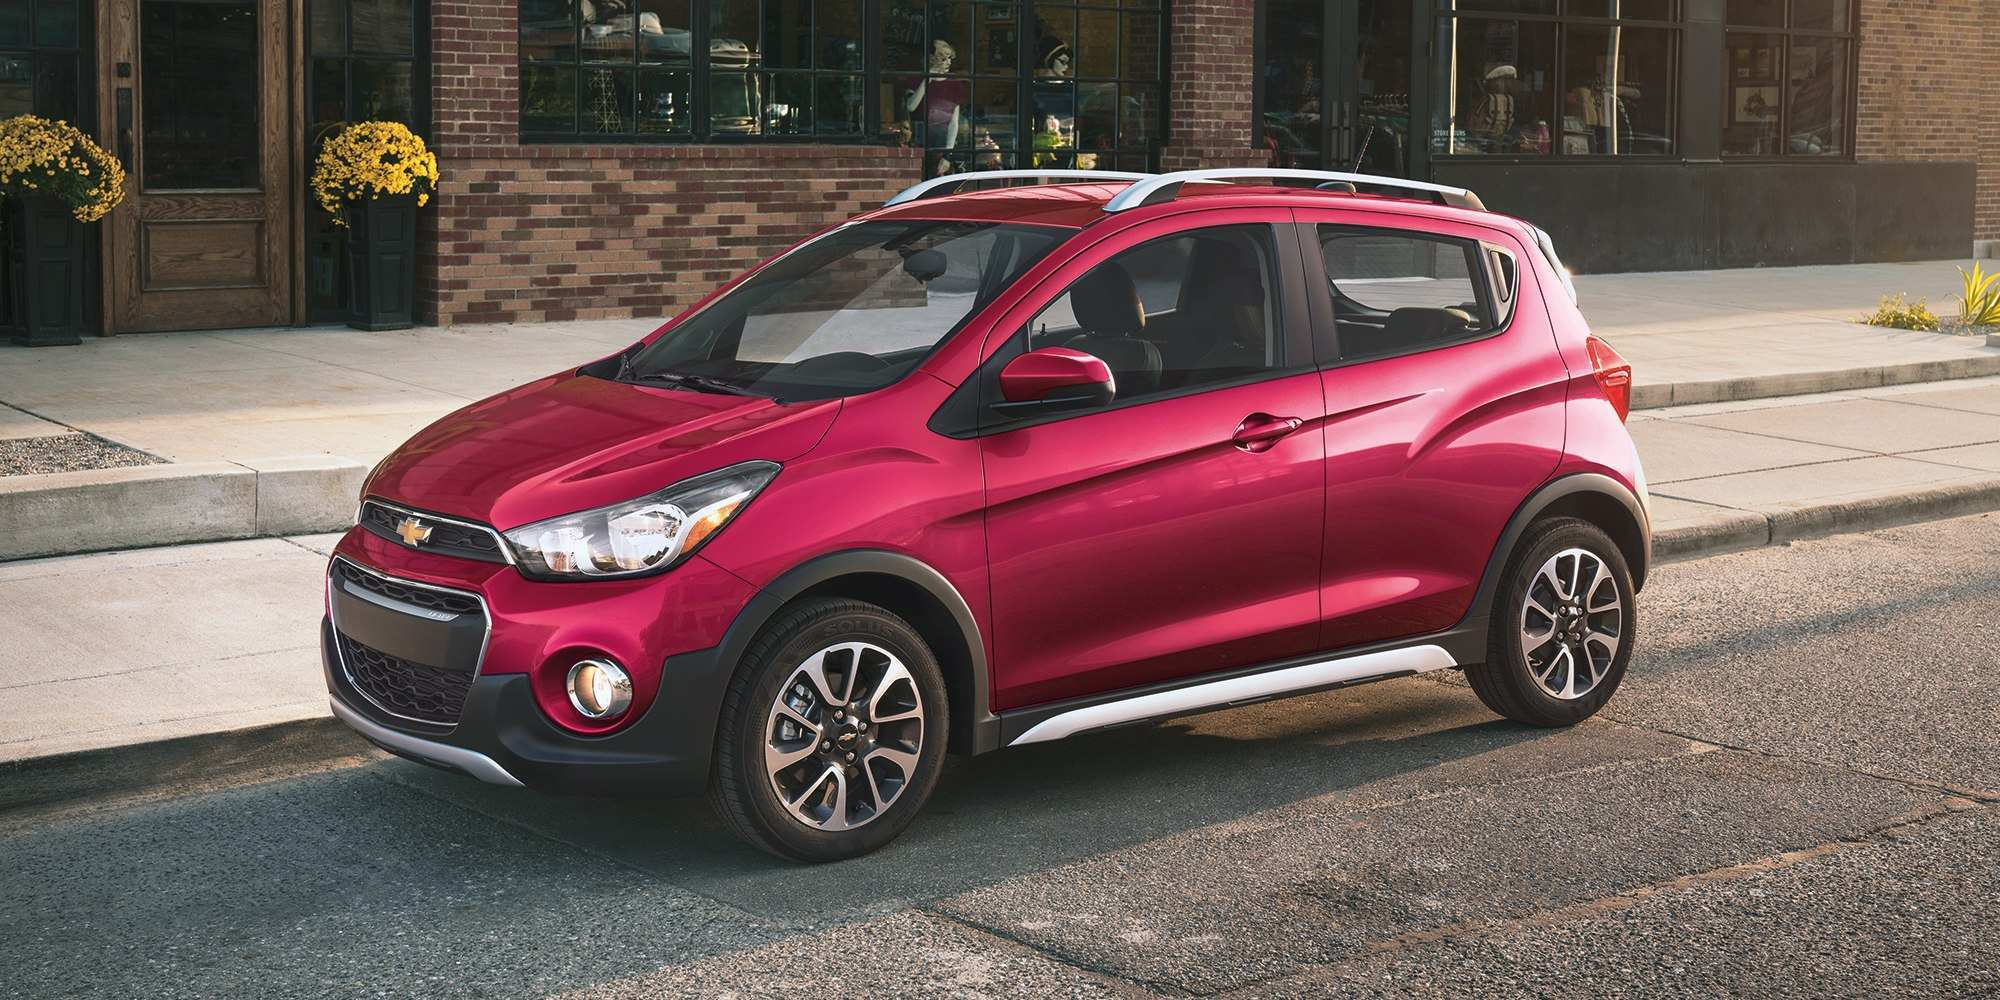 23 Best 2019 Chevrolet Spark Redesign And Review